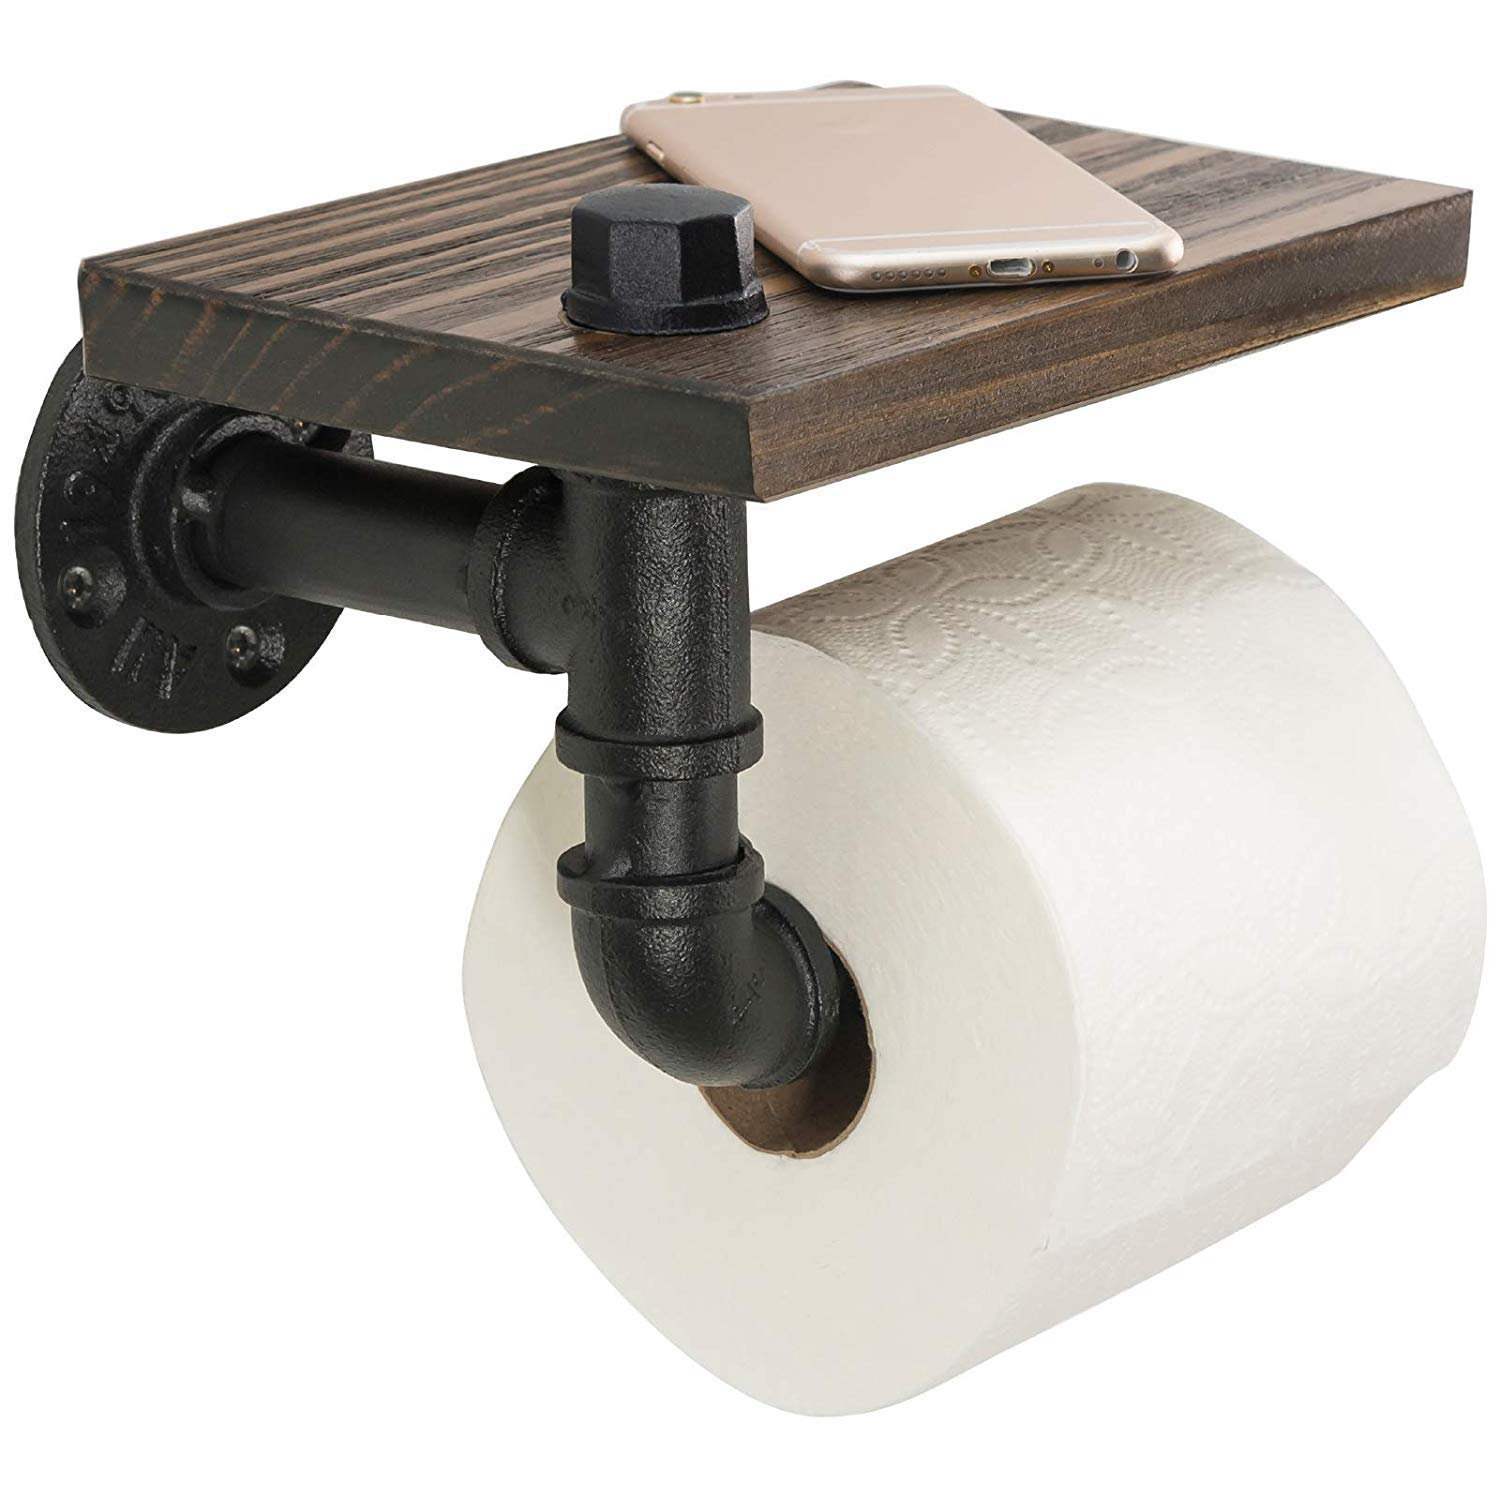 BelVIST Industrial Pipe Toilet Paper Holder with Rustic Wooden Shelf Metal Wall Storage Iron Pipe Roll Hanger for Bathroom, Washroom by BelVIST